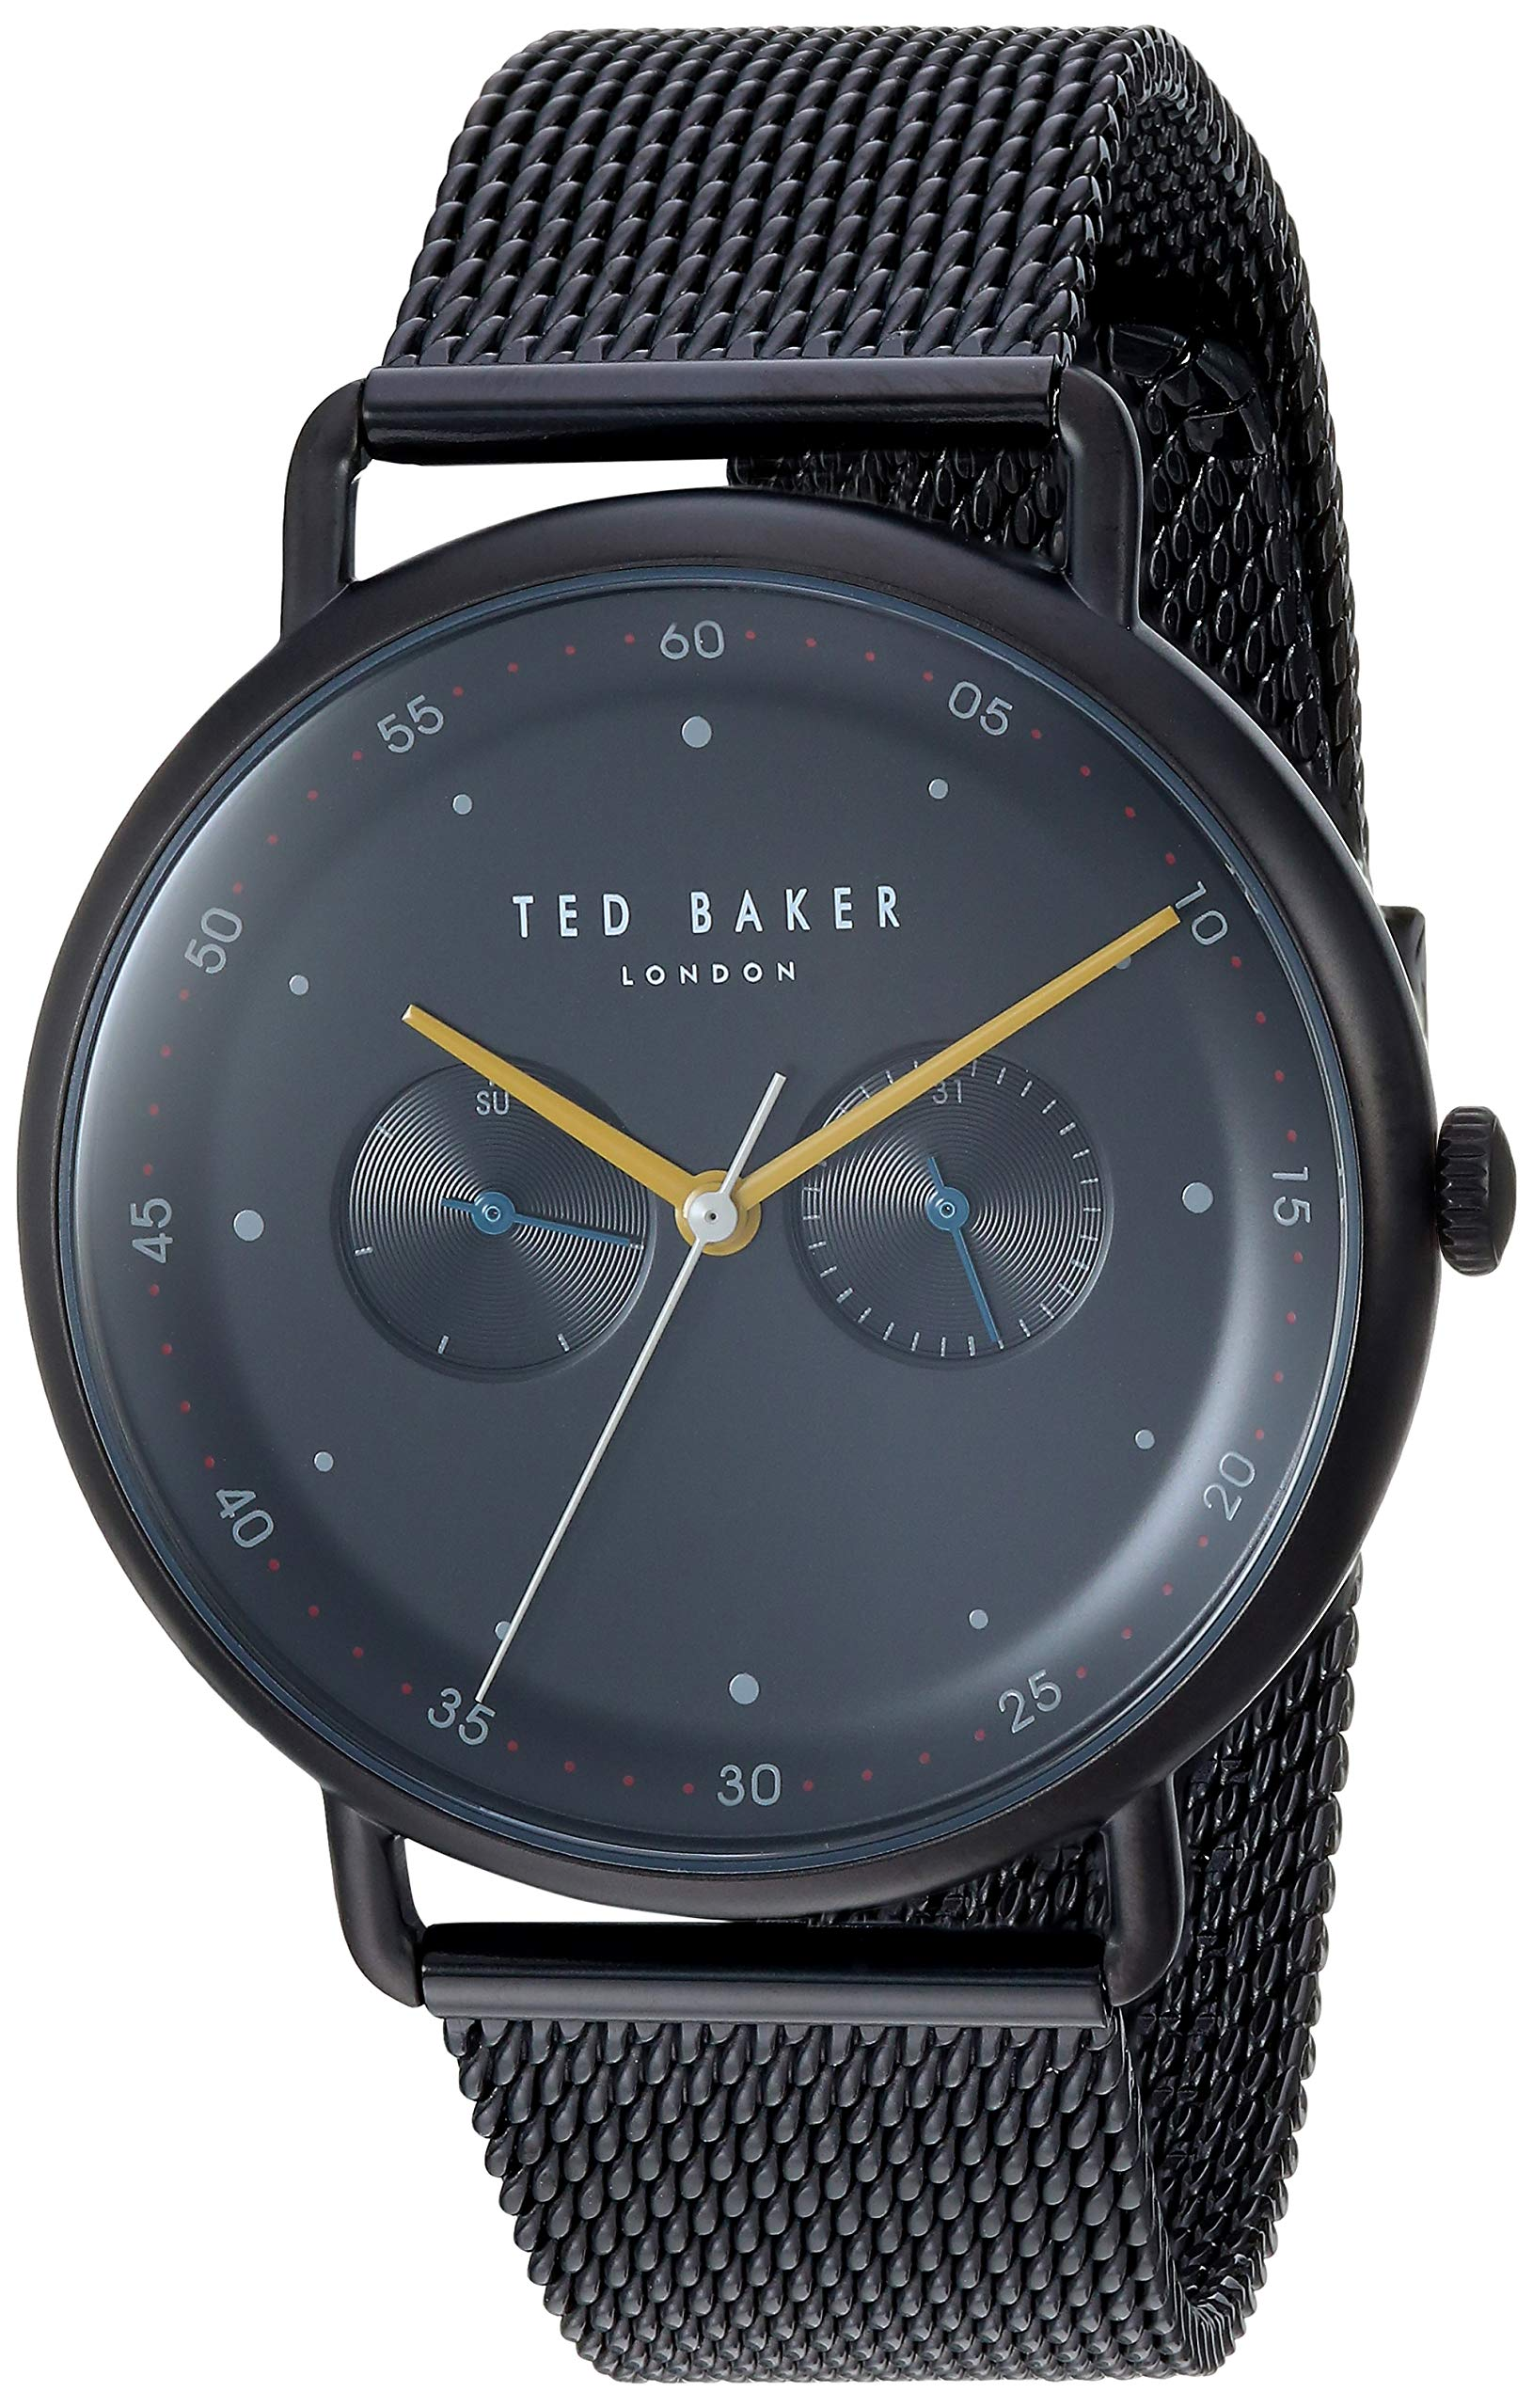 Ted Baker Men's George Quartz Watch with Stainless-Steel Strap, Black, 19.3 (Model: TE50520009)